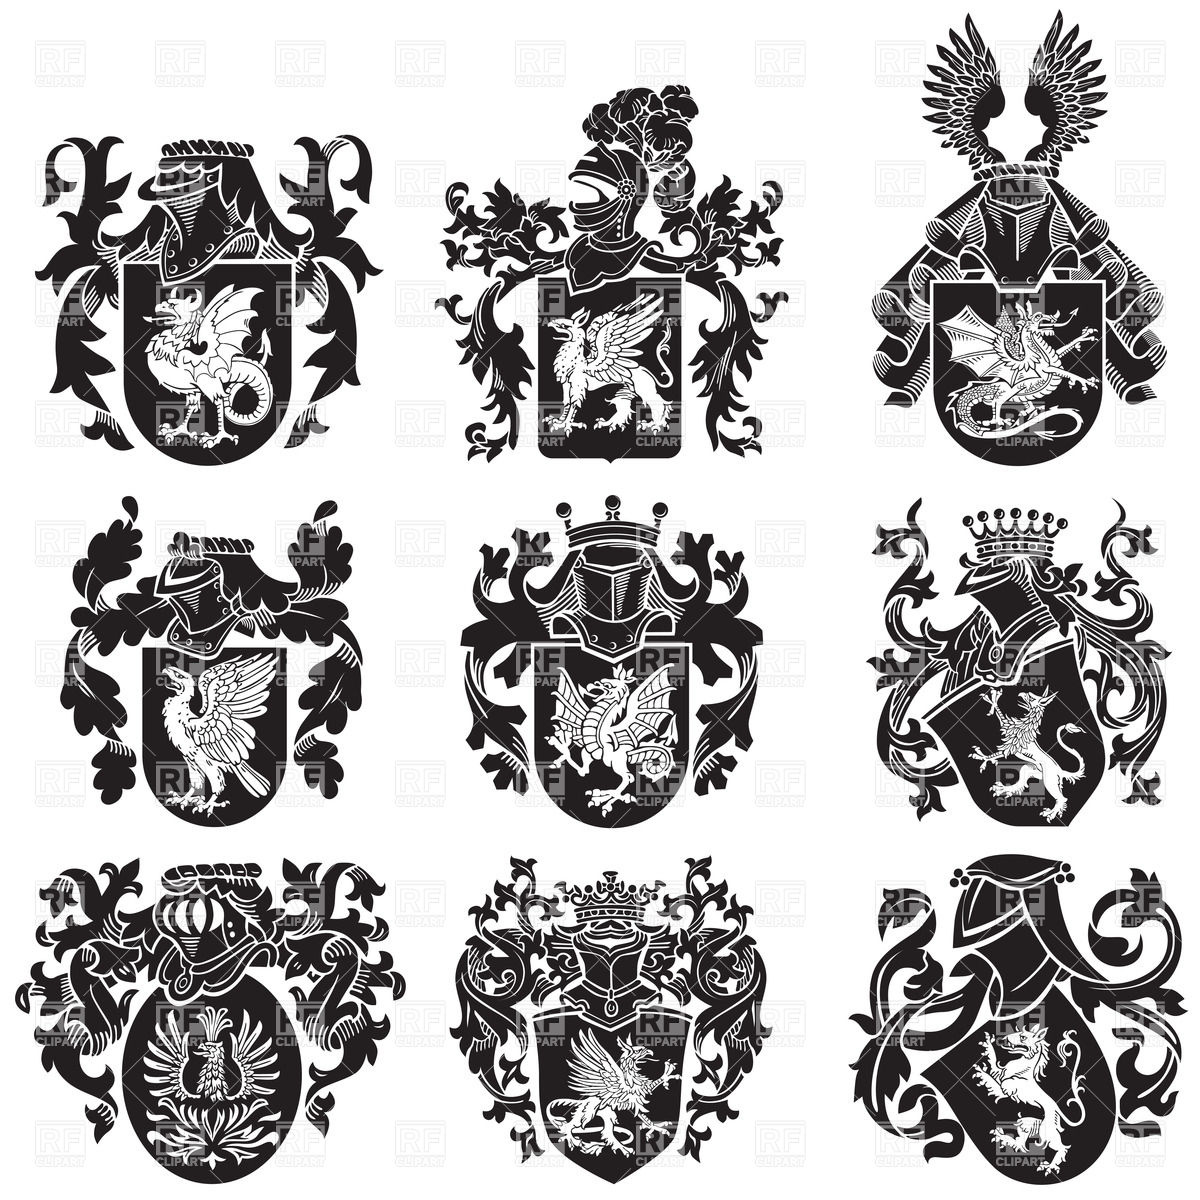 Medieval heraldic coat of arms with mythological animals Vector.